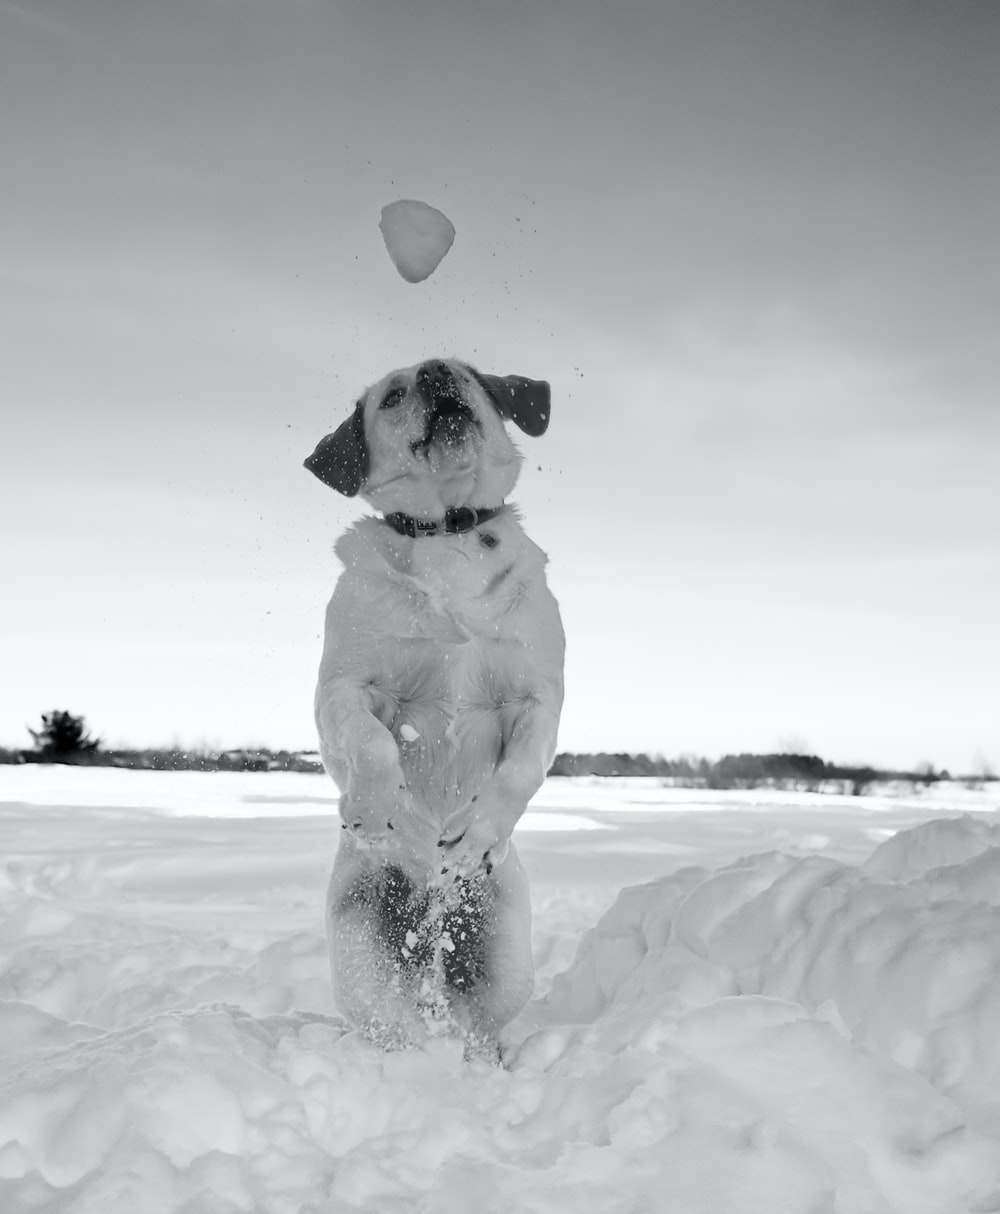 grayscale photo of dog on snow covered ground